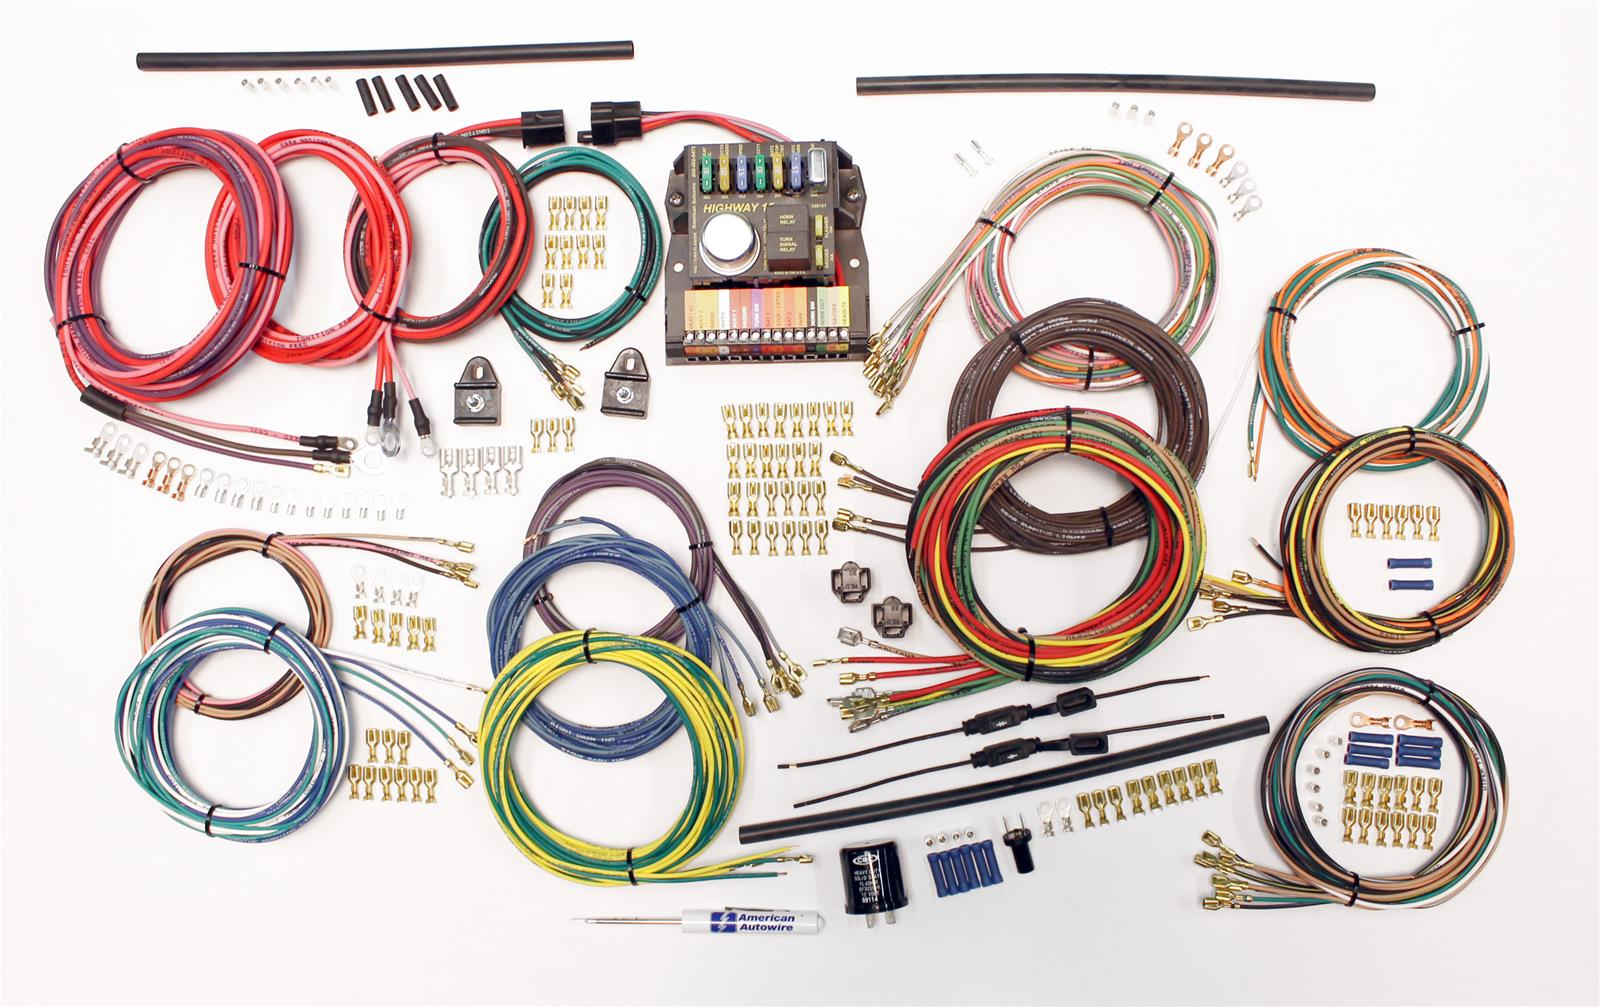 aww 510419_xl american autowire classic update series wiring harness kits 510419 1965 vw bus wiring harness at cos-gaming.co